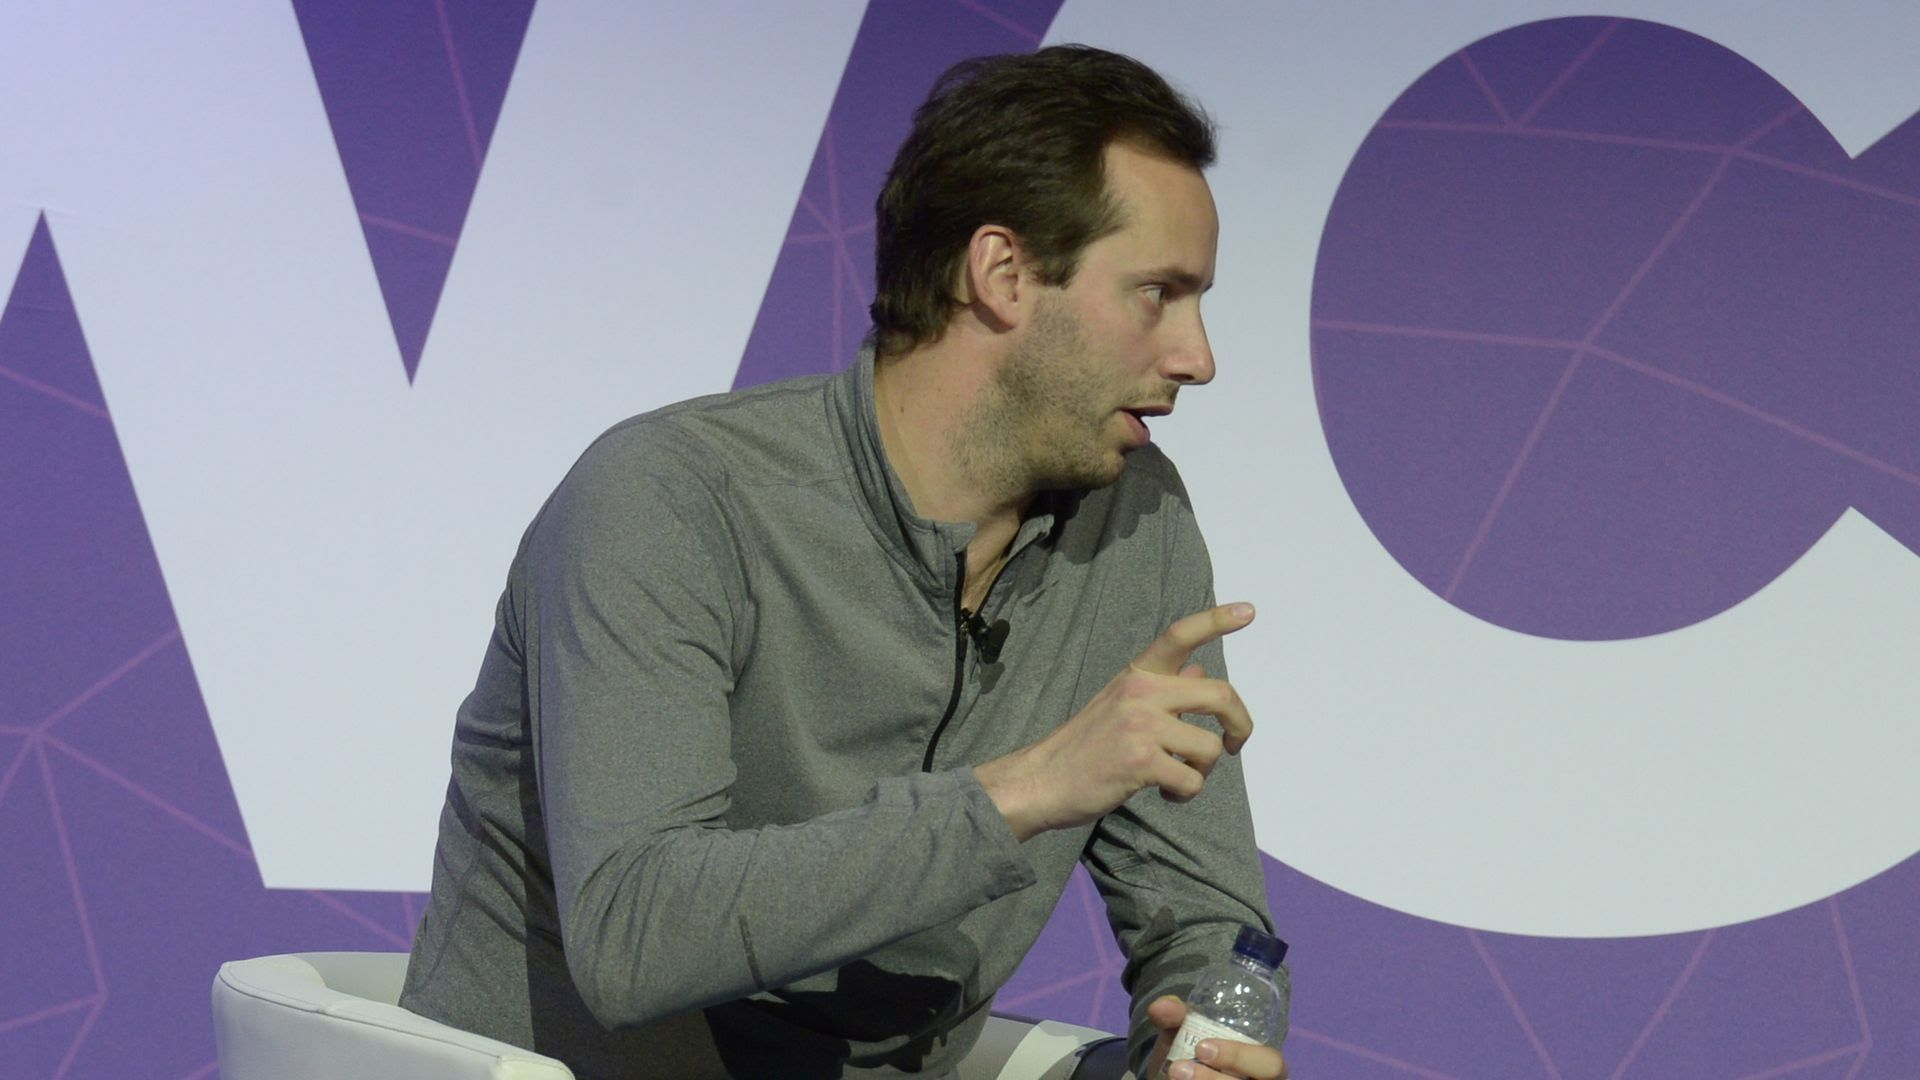 Anthony Levandowski, at the Mobile World Congress in February 2017.